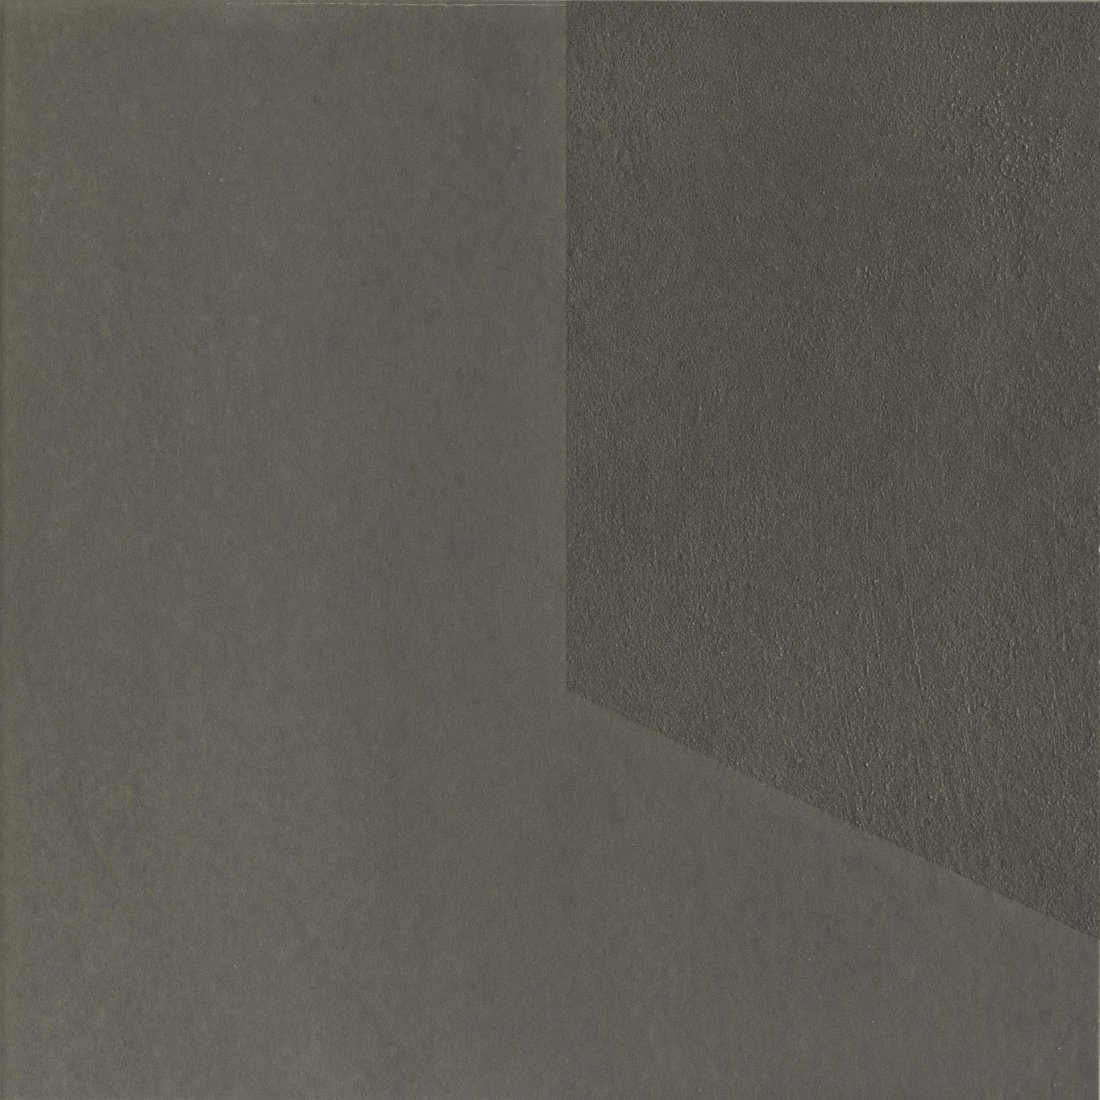 Mutina_NUMI Cliff_a 30x30rett. 2nd choice